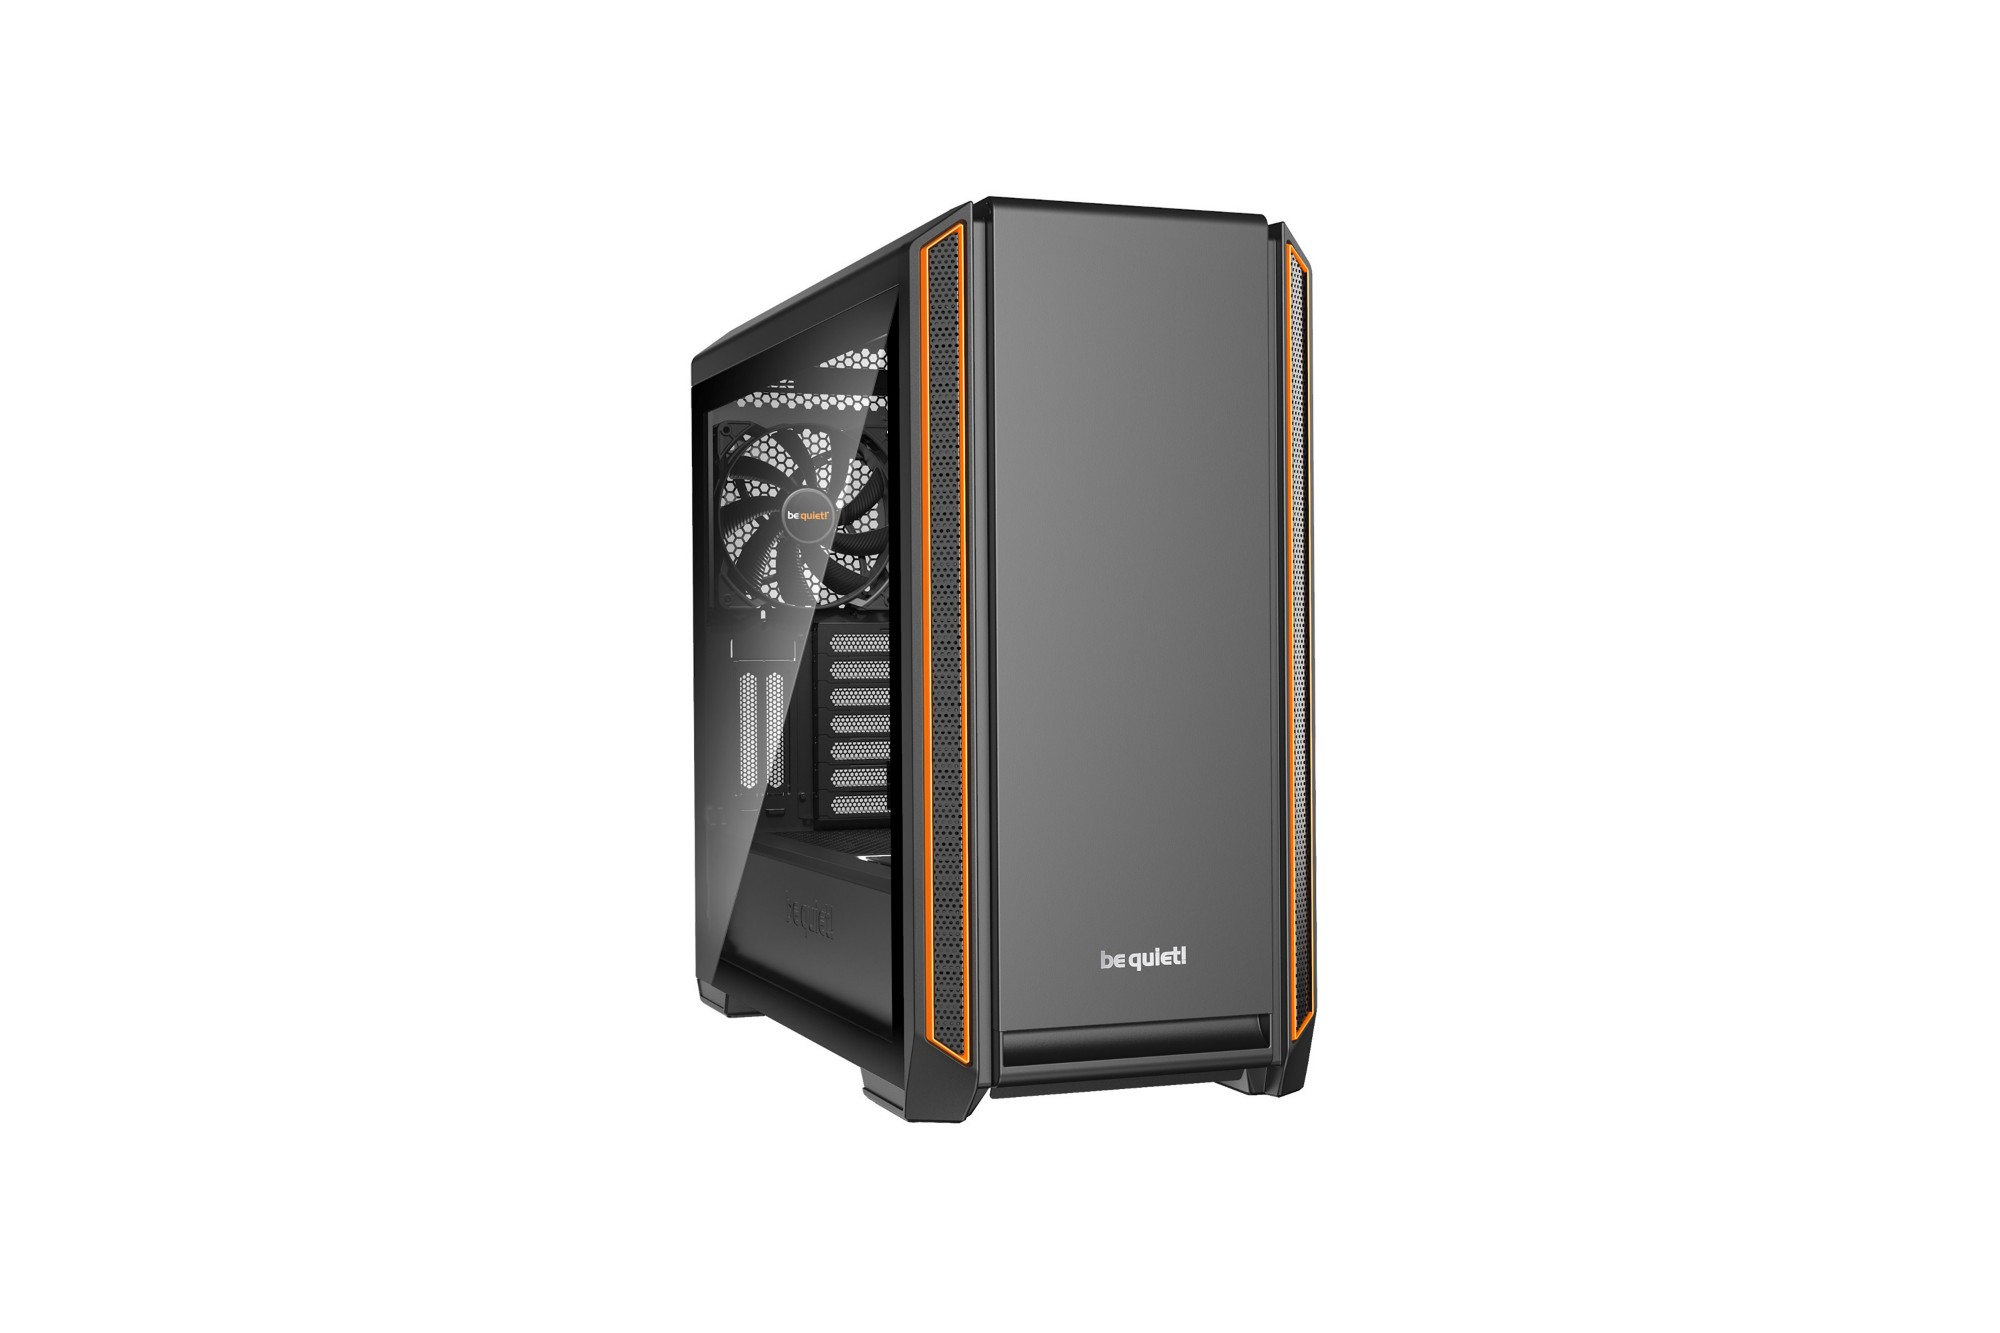 BE QUIET! BGW25 SILENT BASE 601 WINDOW COMPUTER CASE MIDI-TOWER BLACK, ORANGE